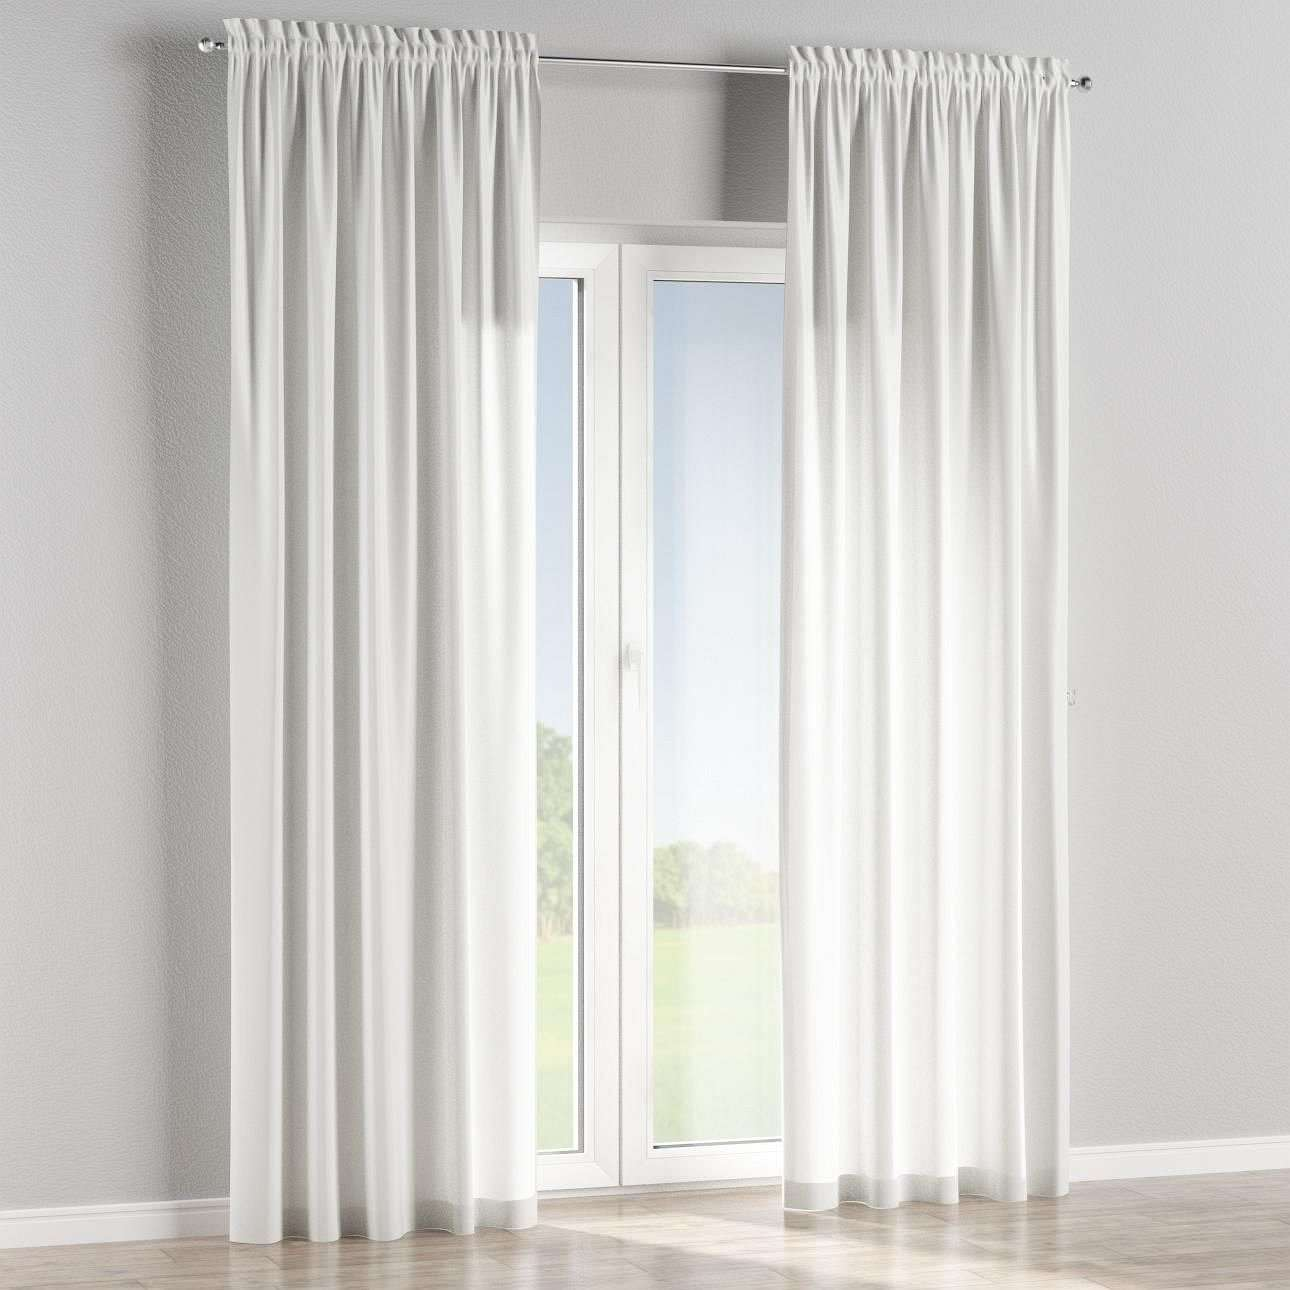 Slot and frill lined curtains in collection Freestyle, fabric: 150-05